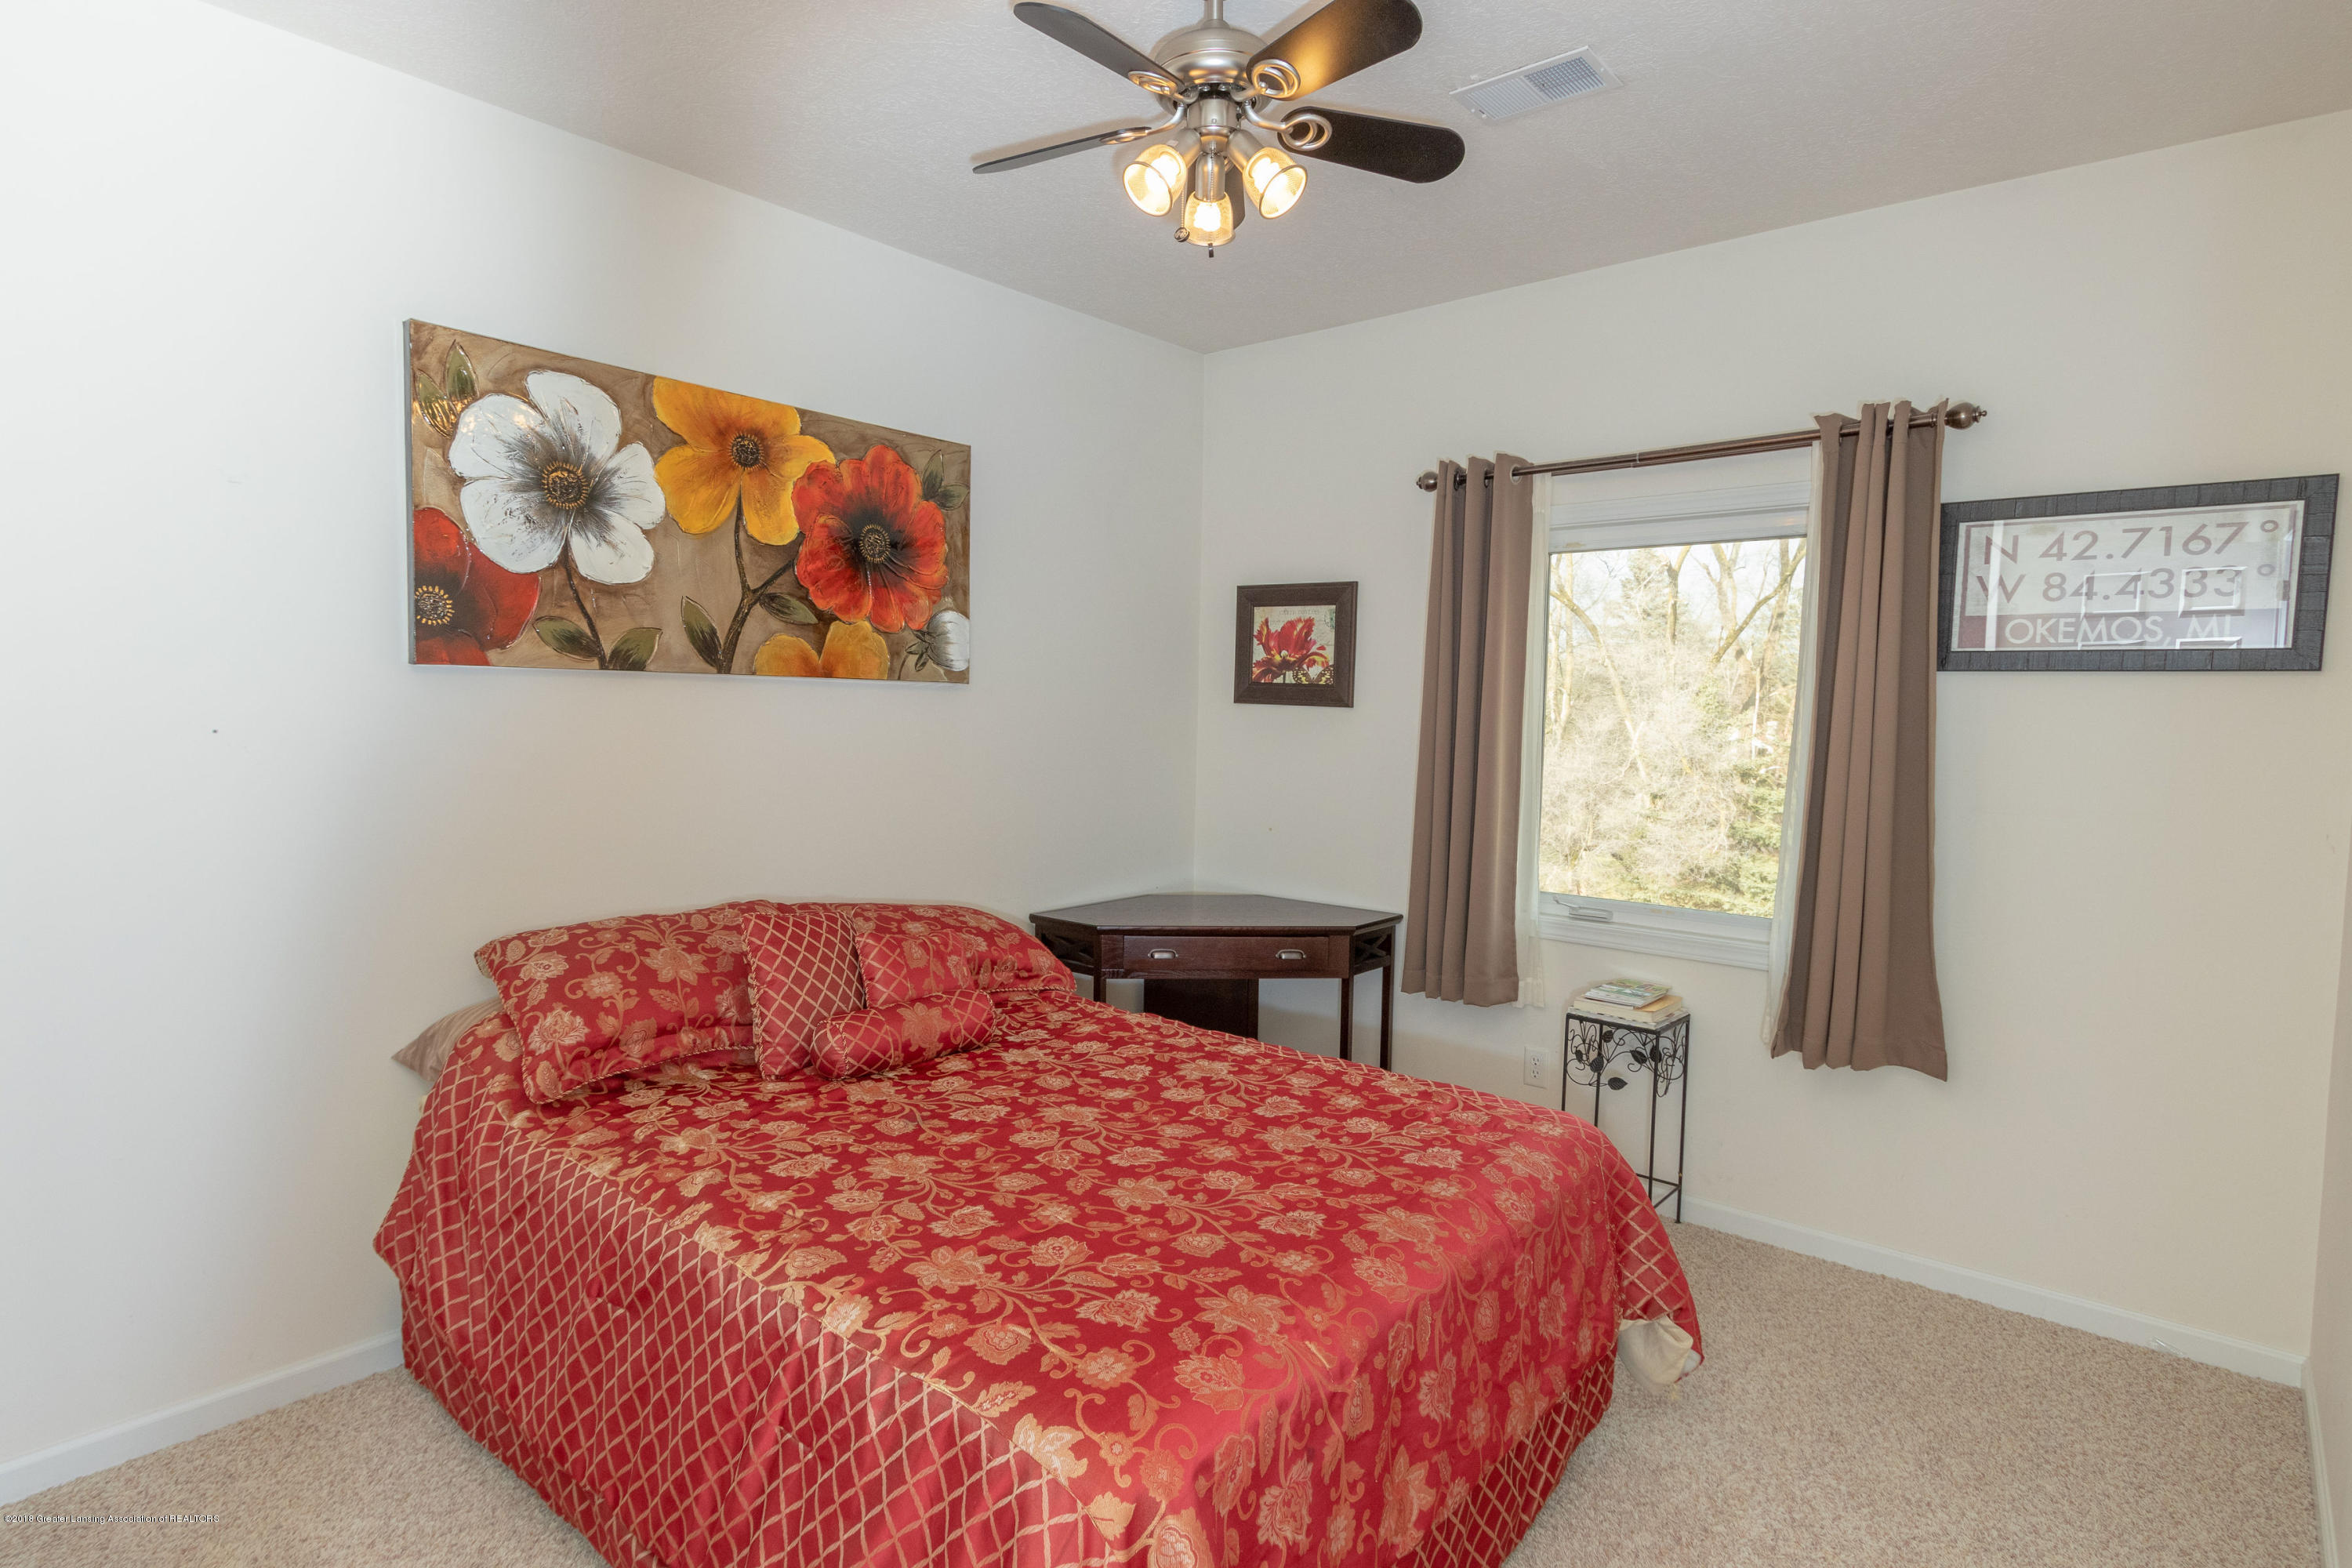 2058 Central Park Dr - Bedroom - 23